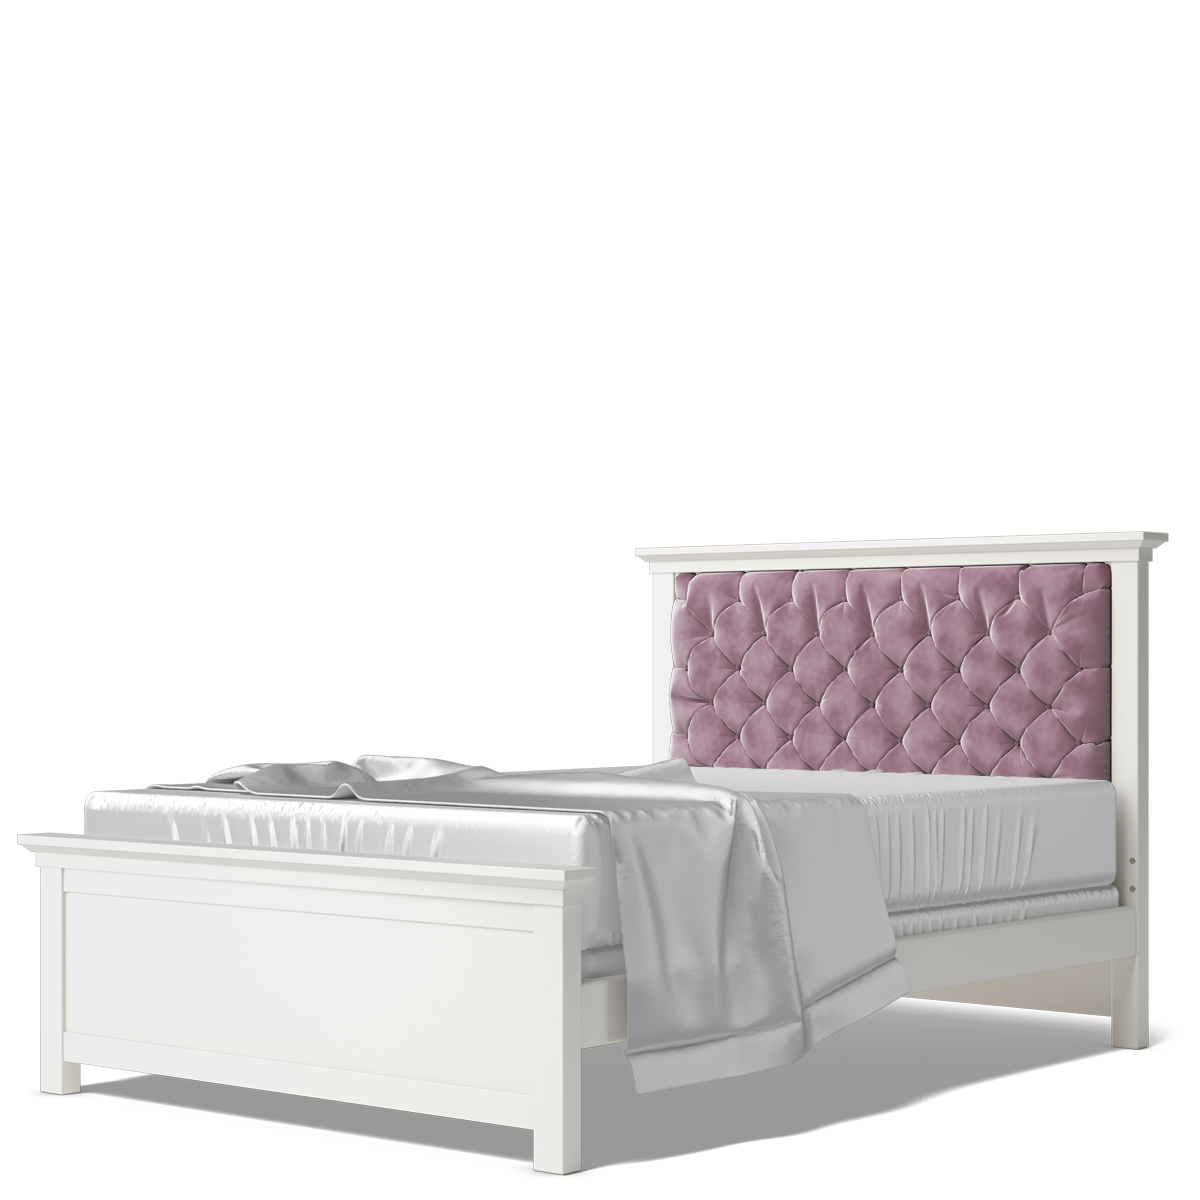 Romina Karisma Pink Velvet Tufted Full Bed